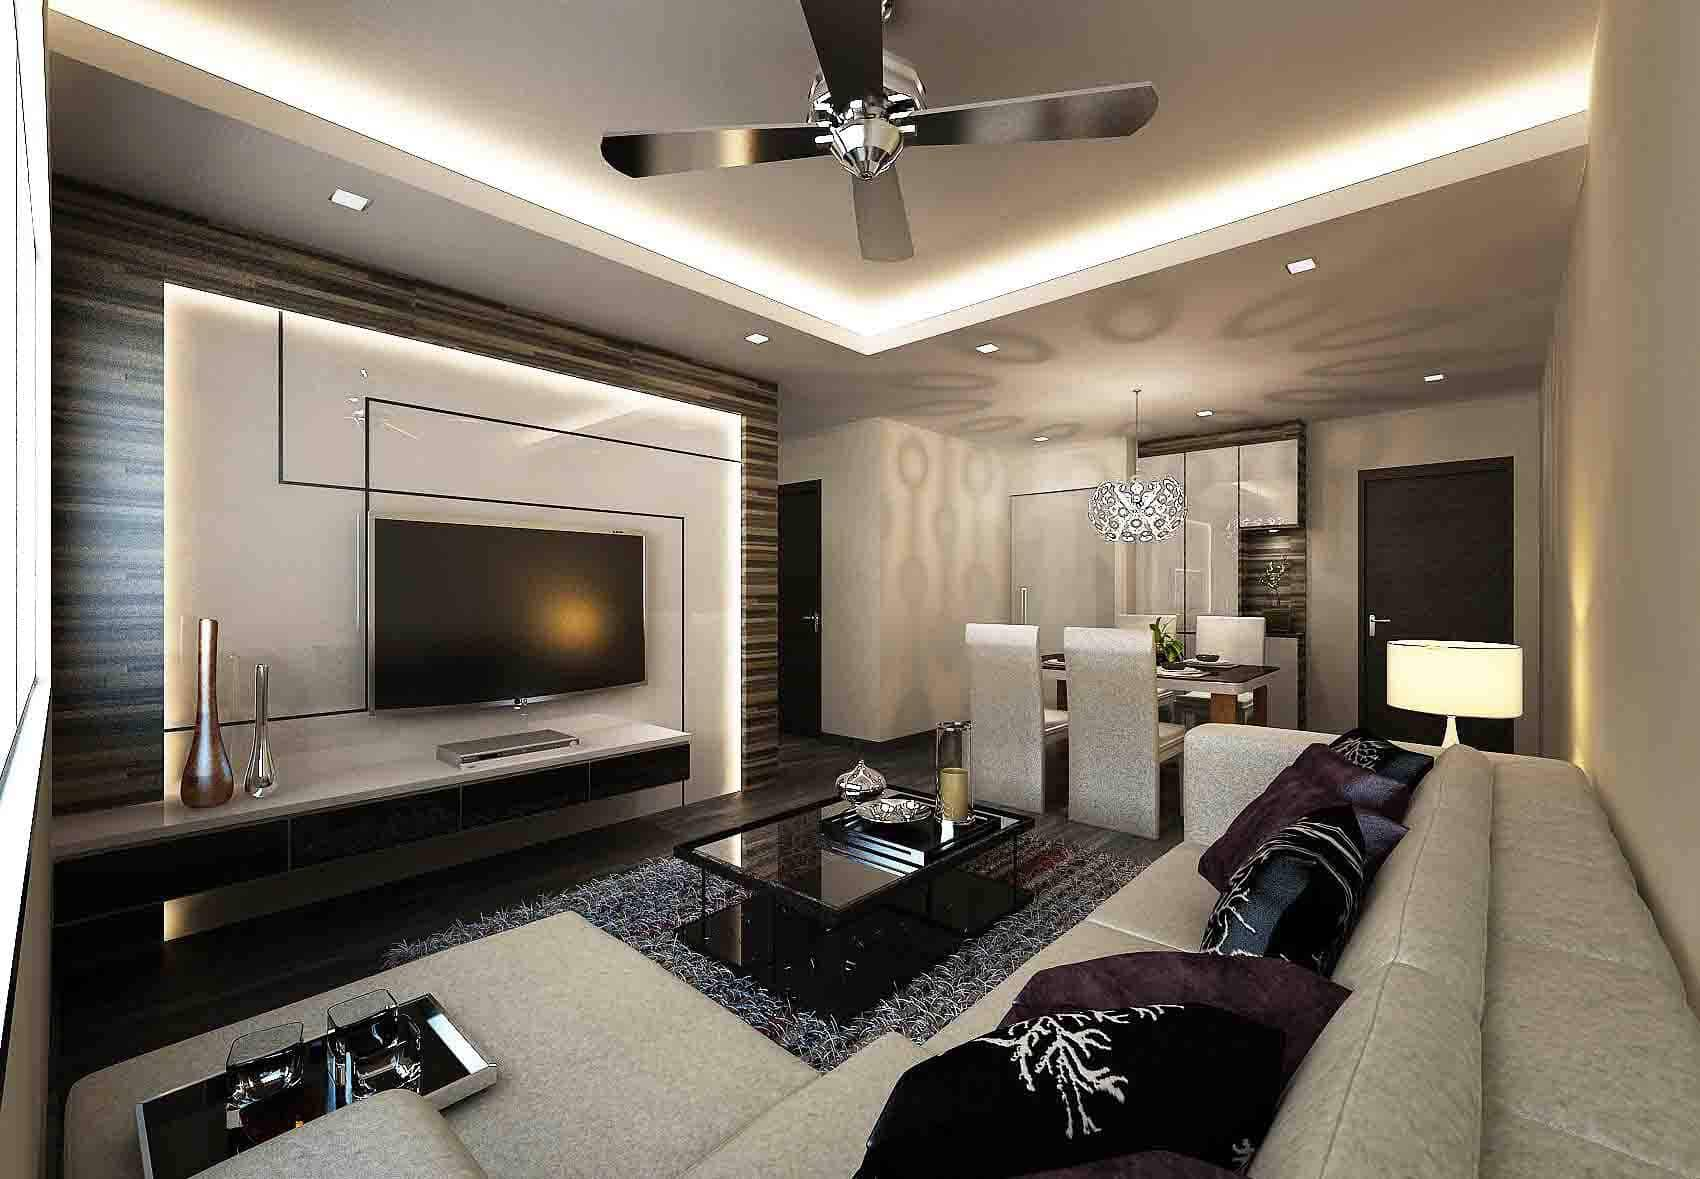 Superior We Hope To Shed Some Light Upon The Living Room Design Ideas In This  Article. If You Want More Ideas To Think Creatively For Your Living Room,  ...